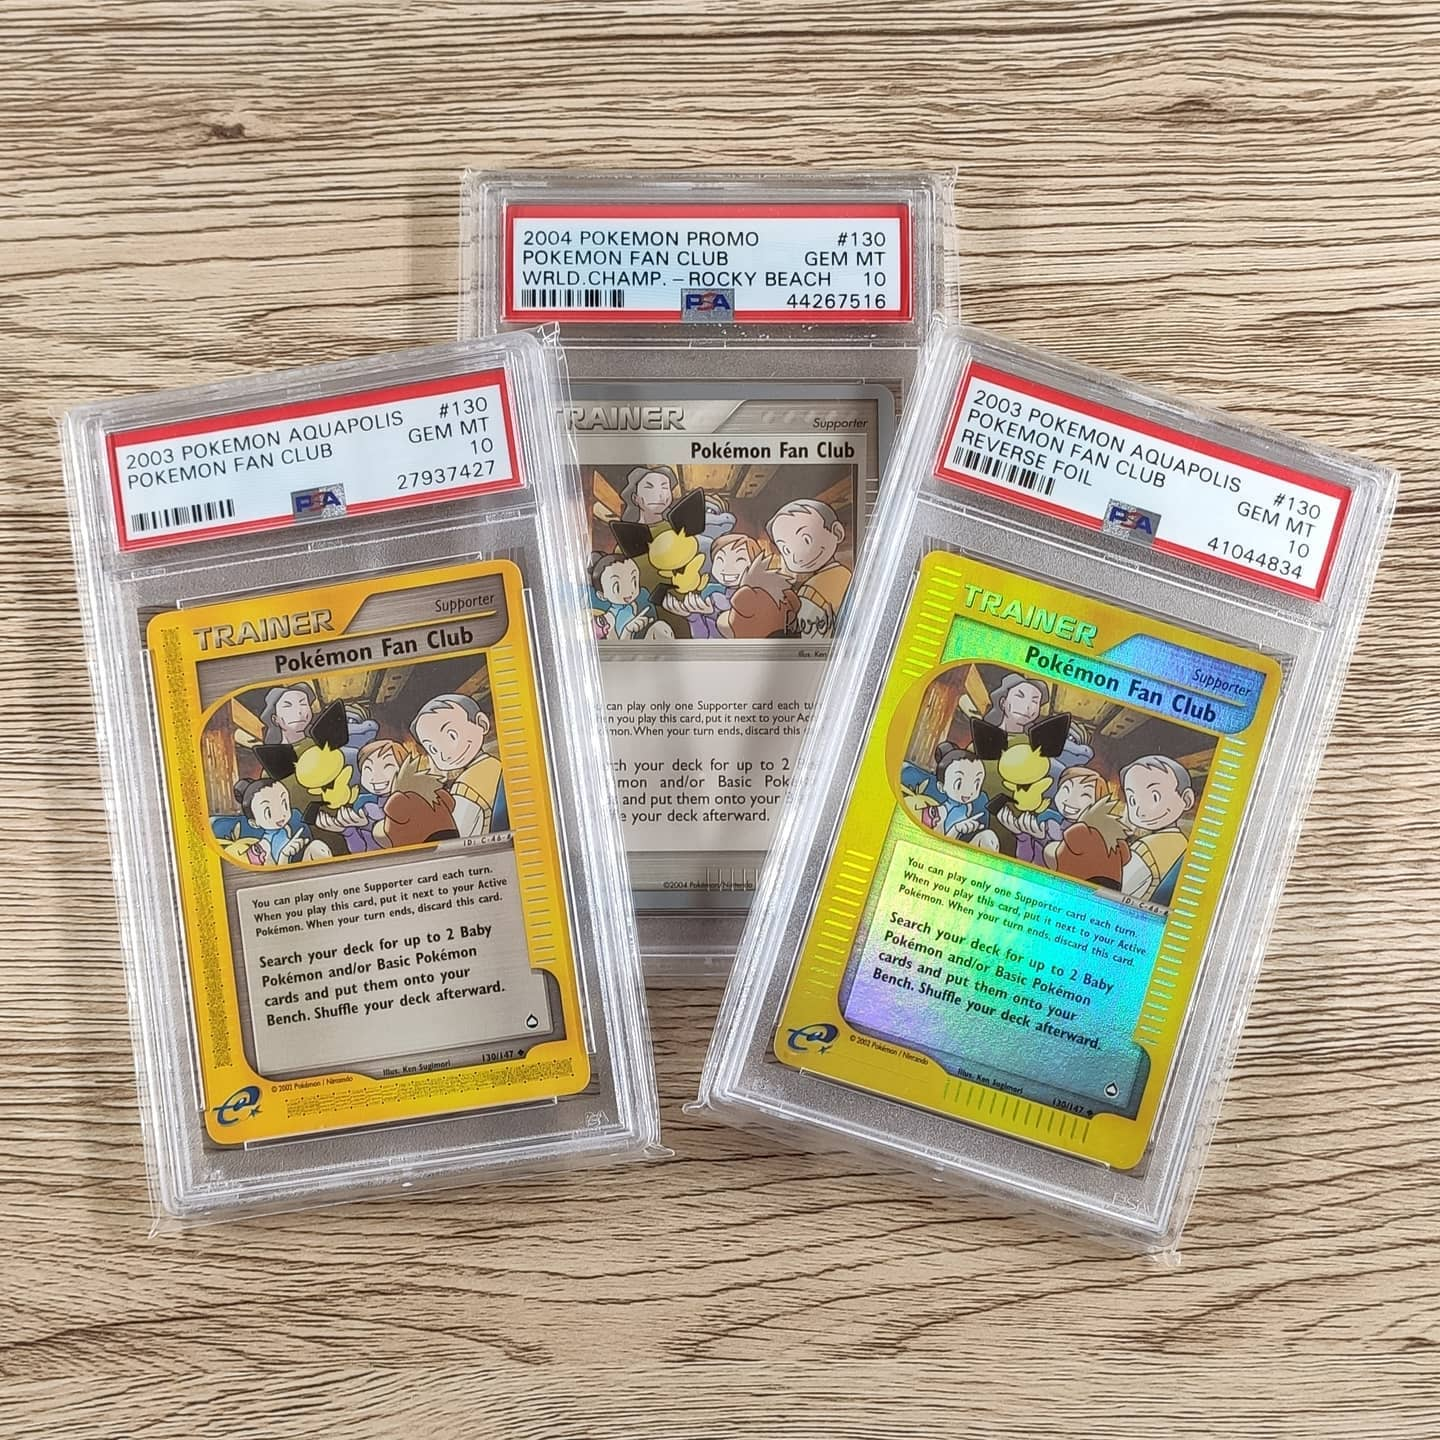 My PSA 10 1st edition and unlimited Japanese Pokémon Fan Club cards (picture from my Instagram feed).